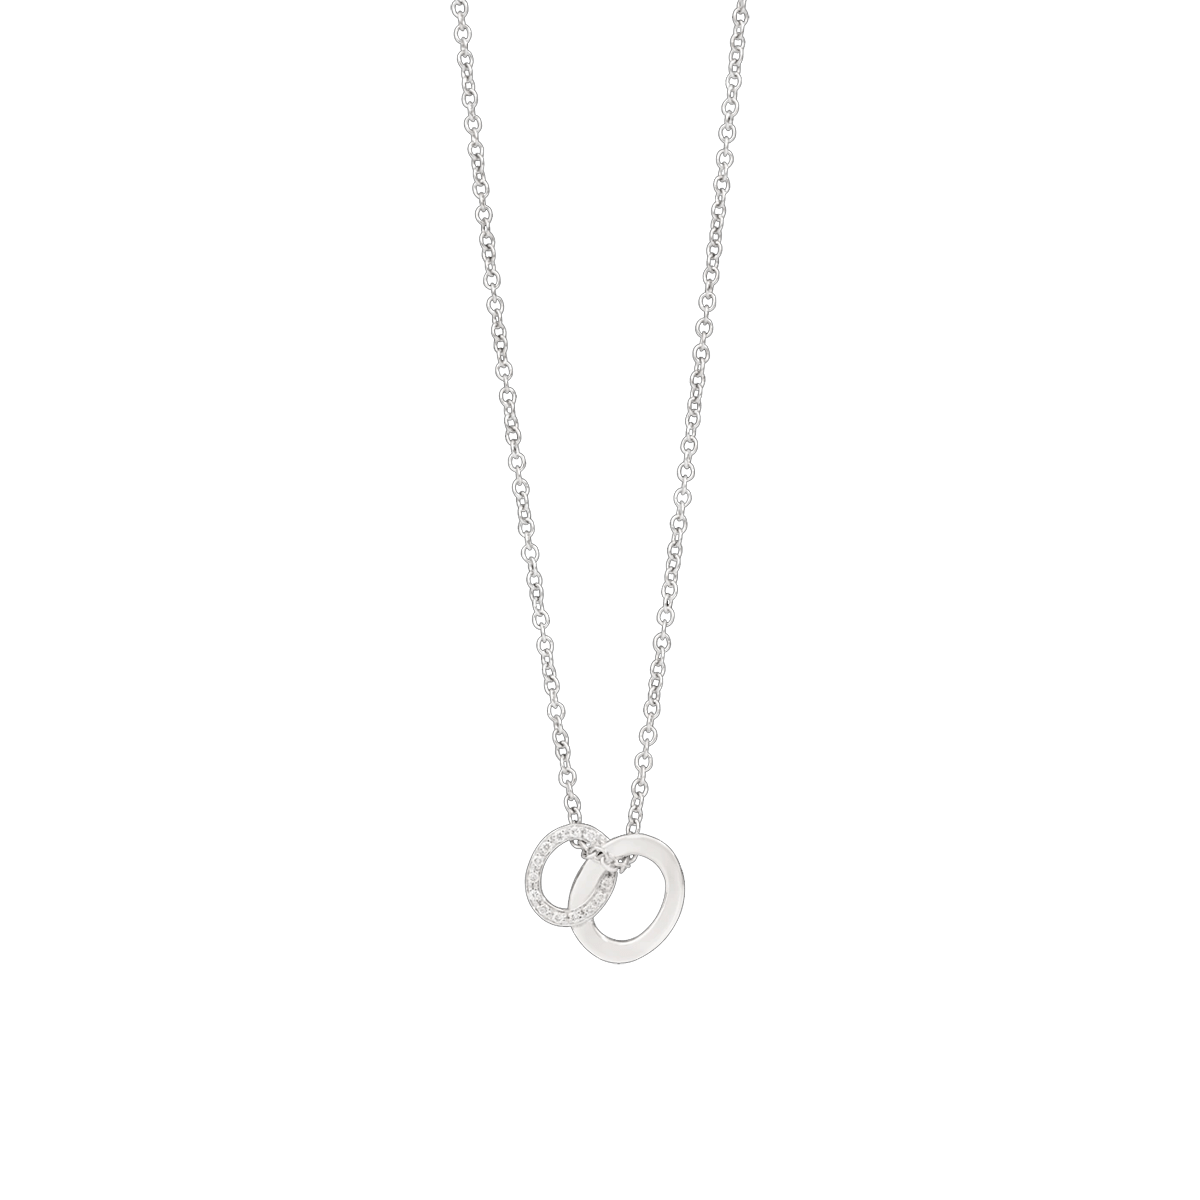 Diamond Brera Pendant